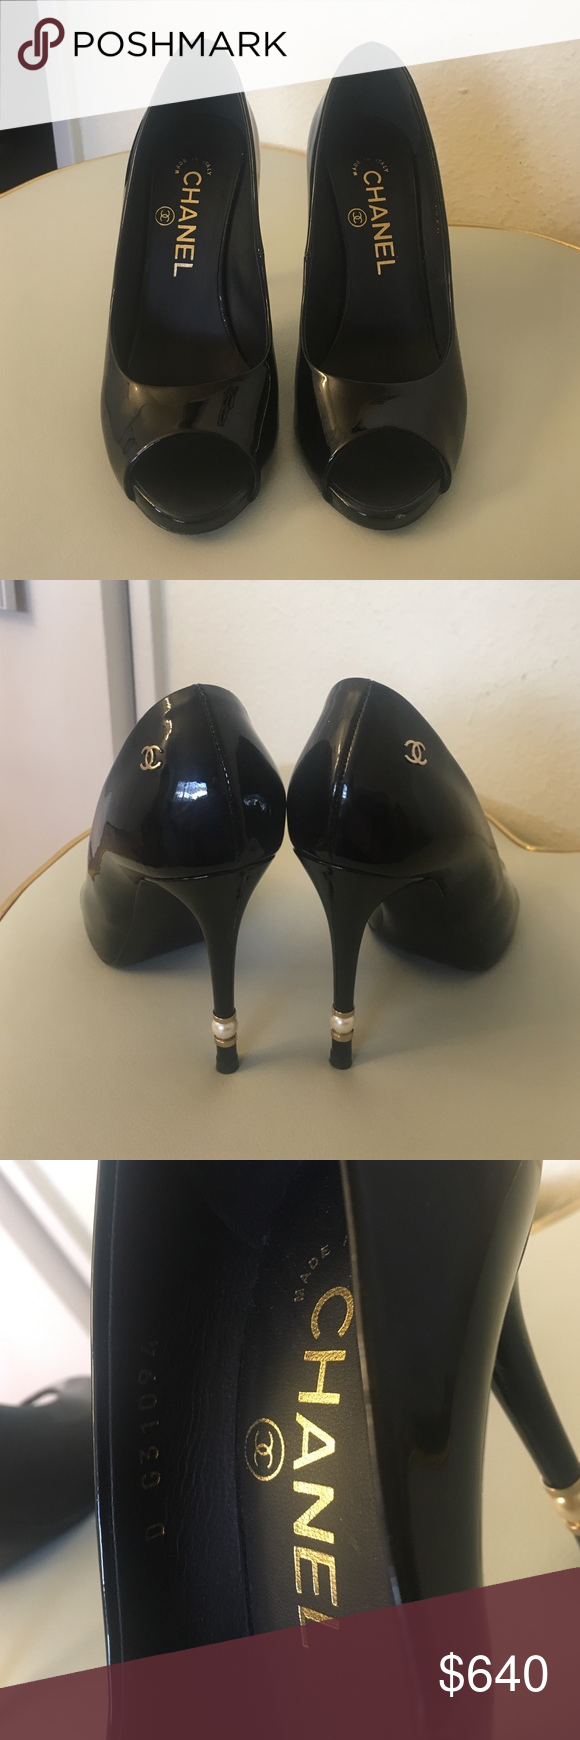 Peep toe black Chanel pump shoes with pearls 100% authentic, gorgeous patent leather Chanel pumps with pearls , wore only twice, comes with its original box, dust bag and the receipt of purchase. Signs of a little wear underneath as attached in the picture. Run half a size big. Fits size 6. ⚡️NO TRADE IN ⚡️ CHANEL Shoes Heels